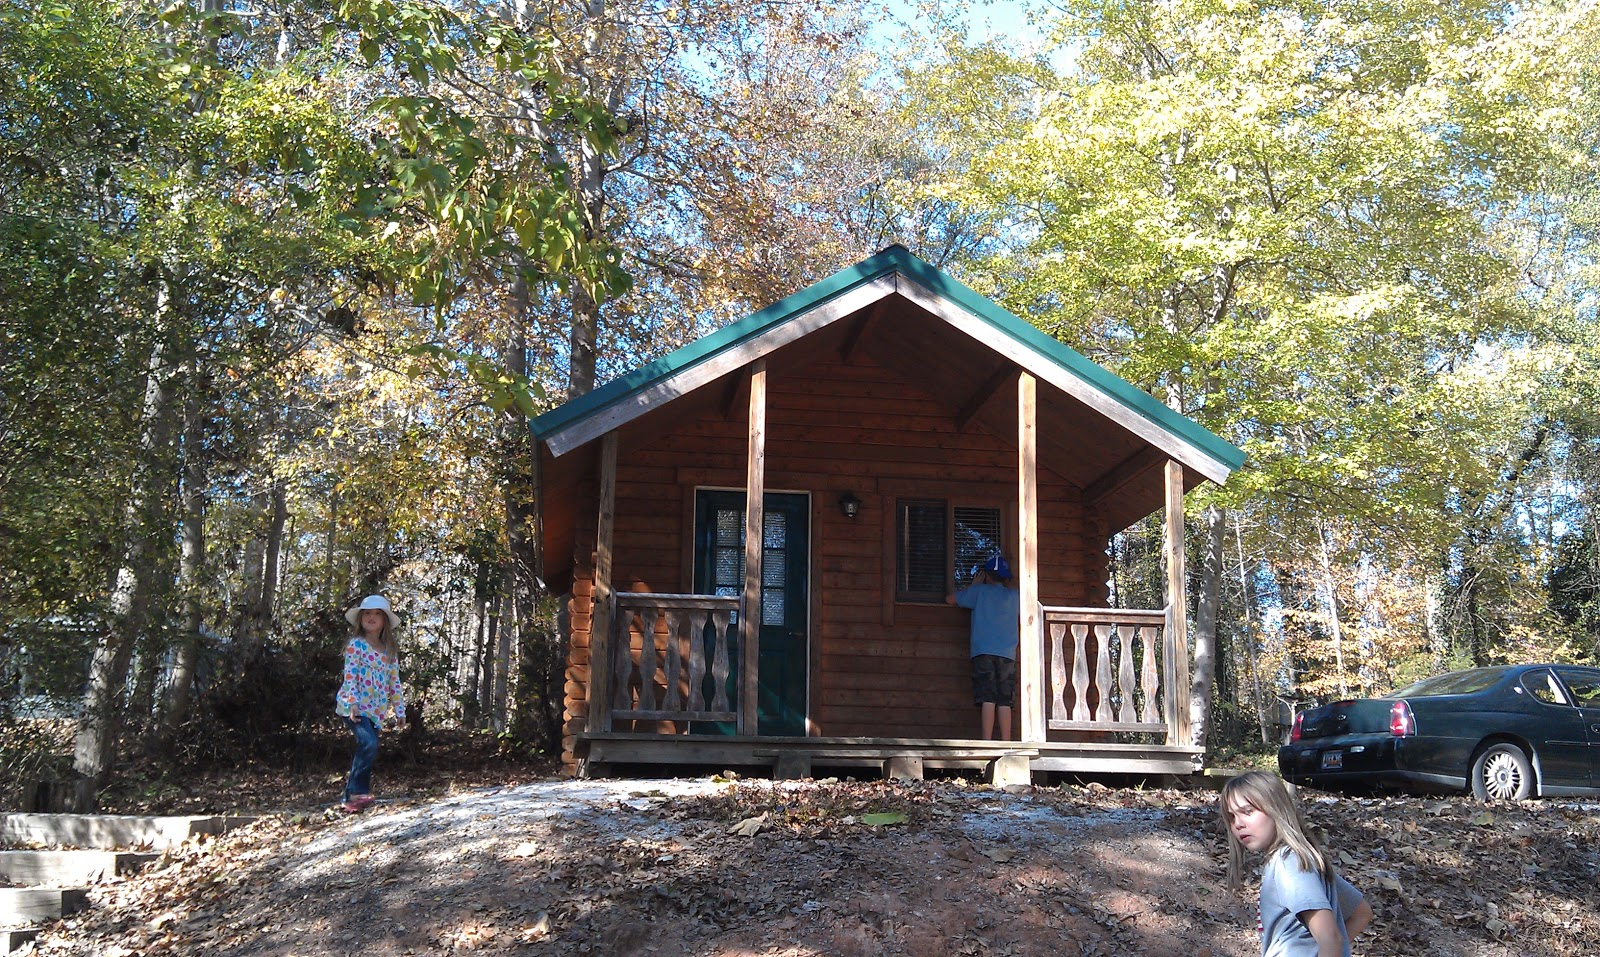 reside for lake rentals looking time or beautiful to perfect full getaway cabin cabins pin hartwell on a